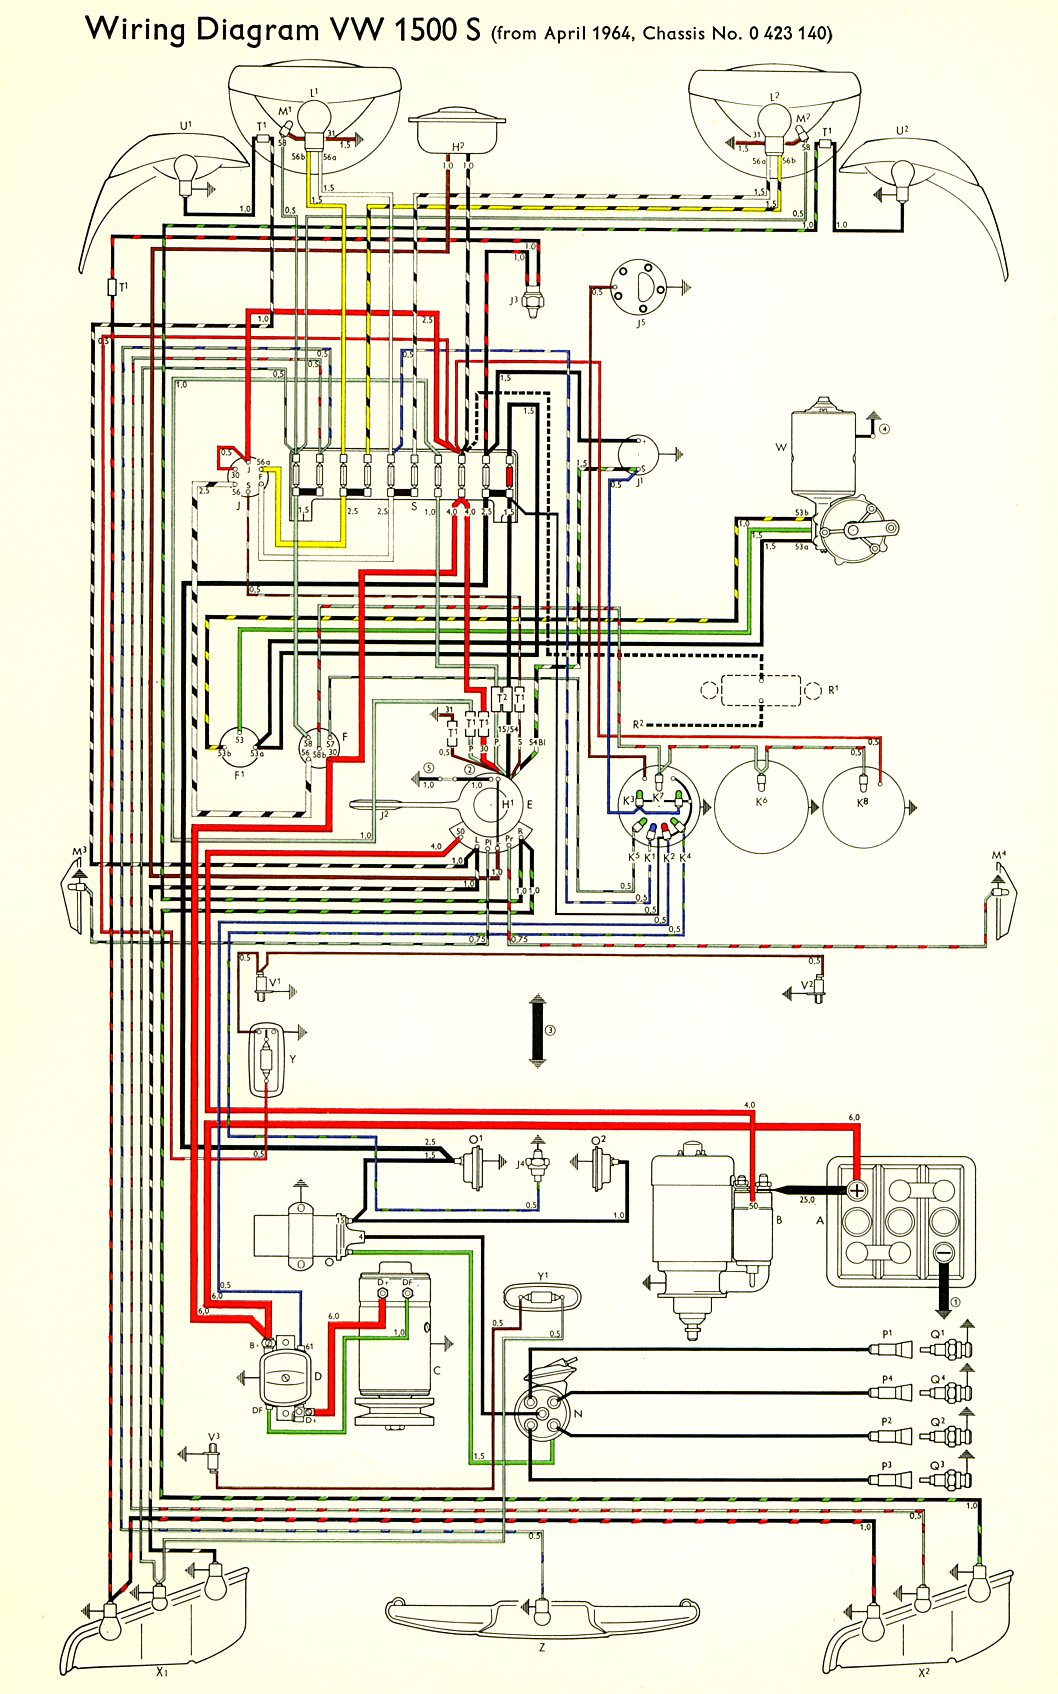 Type 3 Wiring Diagrams In Addition Vw Beetle Diagram Further Electrical